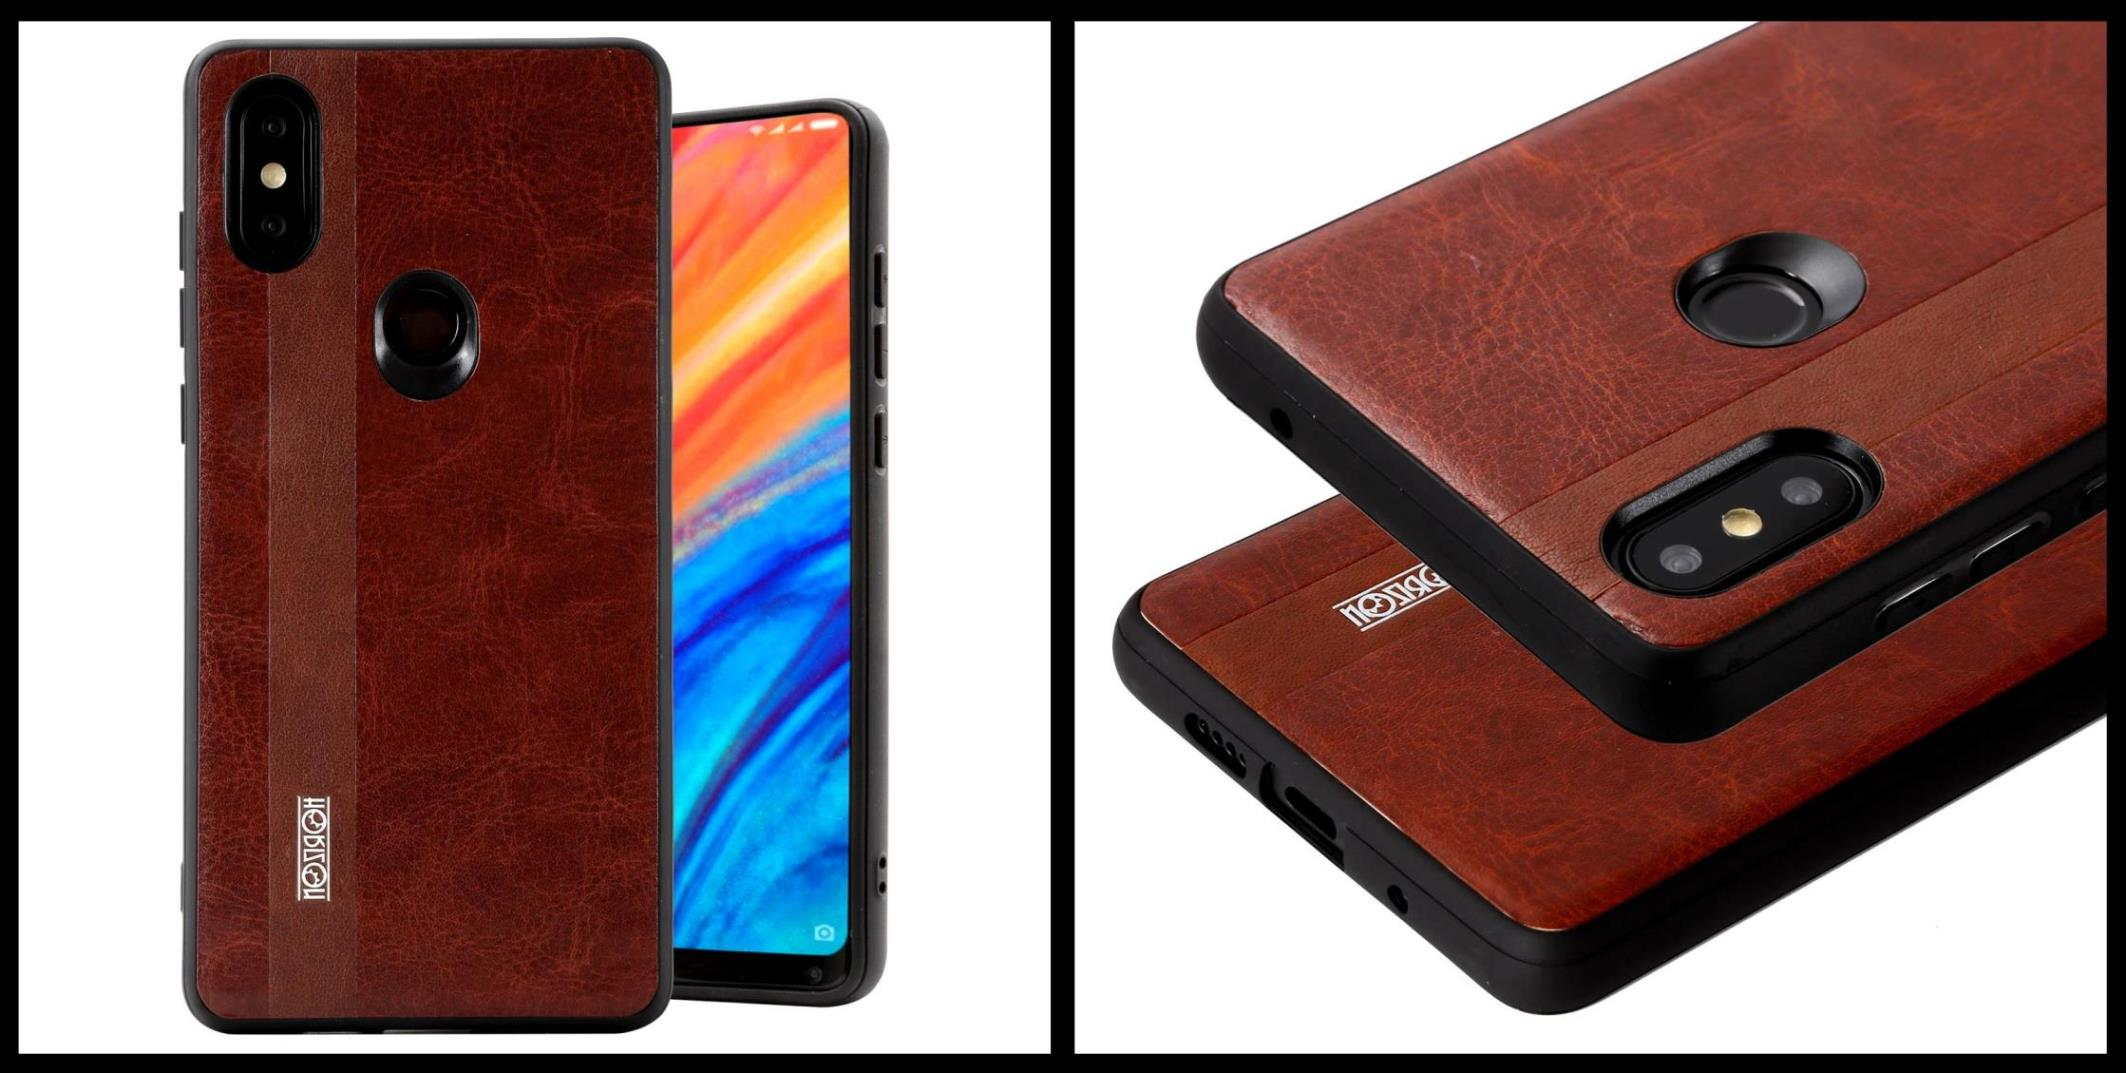 noziroh-leather-xiaomi-mi-mix-2s-cover-case-shockproof-slim-design-brown-black